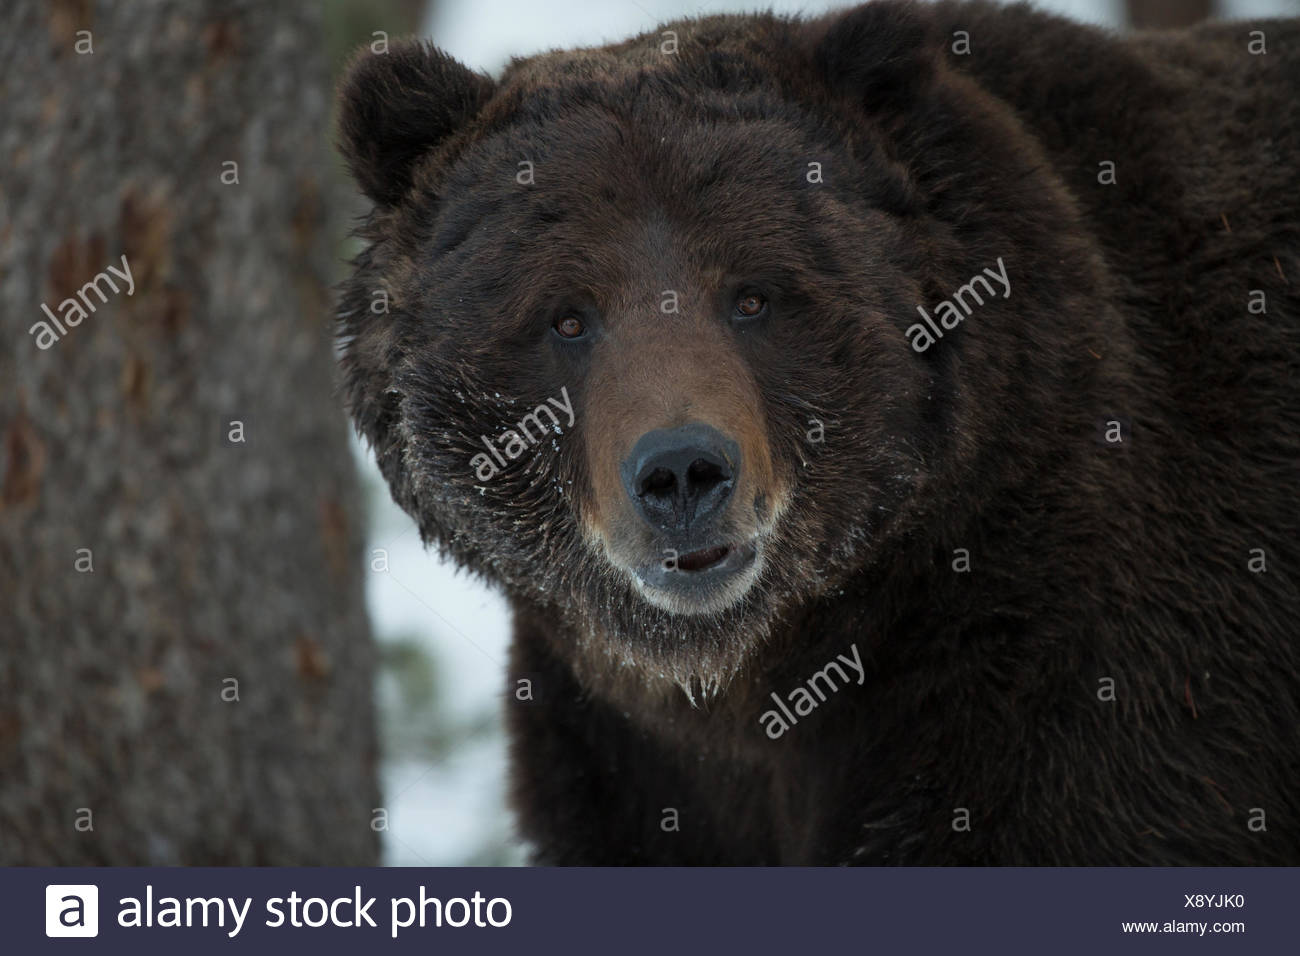 A grizzly bear, Ursus arctos horribilis, in Yellowstone National Park. - Stock Image